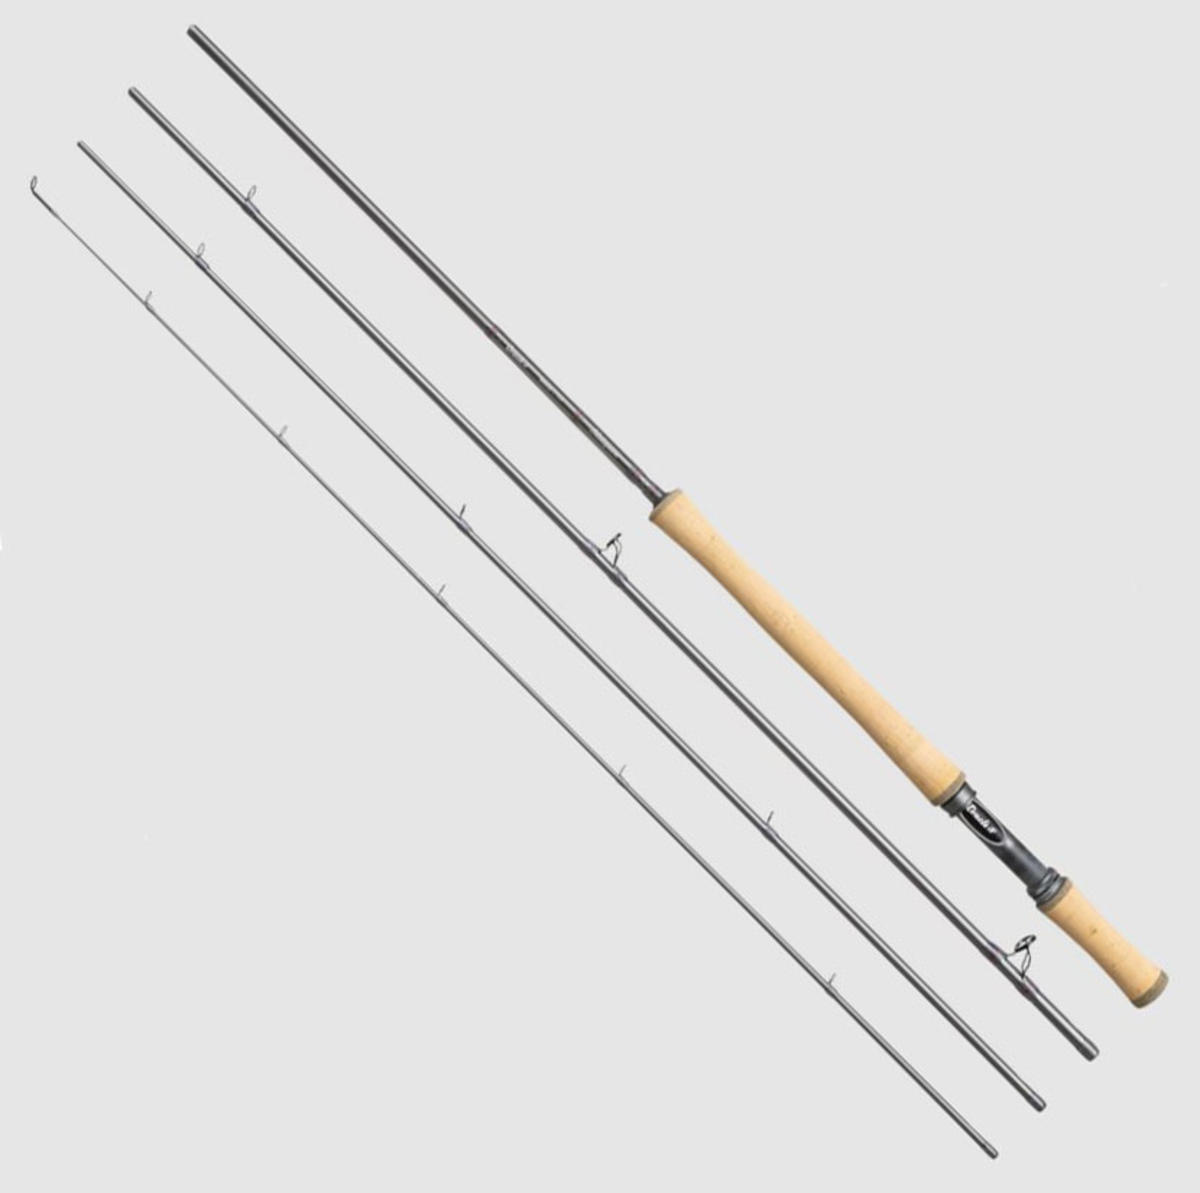 New Shakespeare Oracle 2 Switch Fly Fishing Rods - Trout / Salmon - All Models